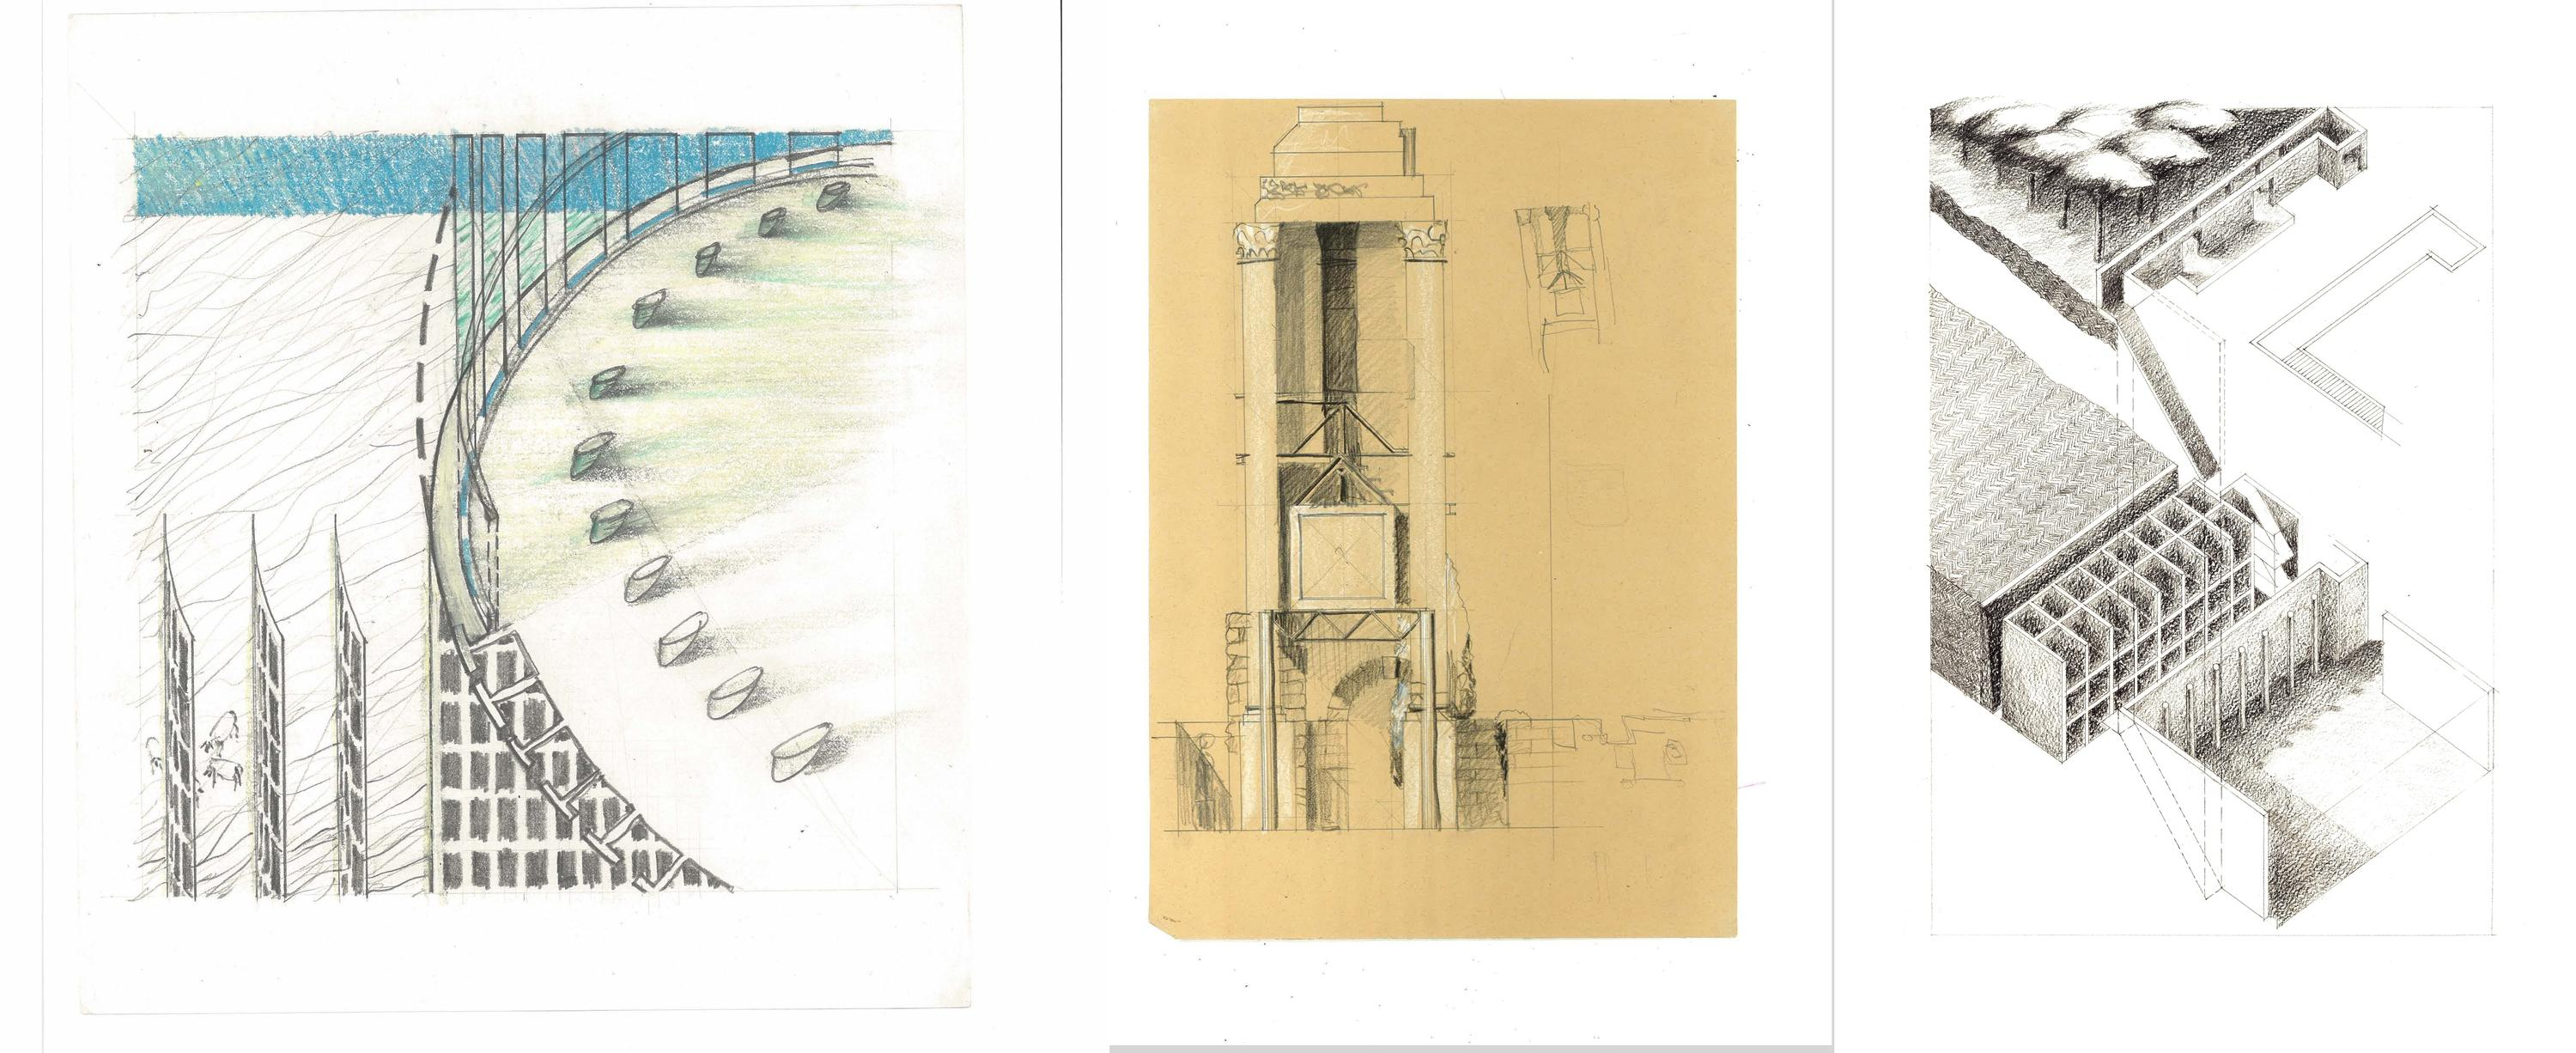 Sketches by Waterloo Architecture graduates Alison Brooks, Howard Sutcliffe and Lisa Rapoport completed during their Rome terms.